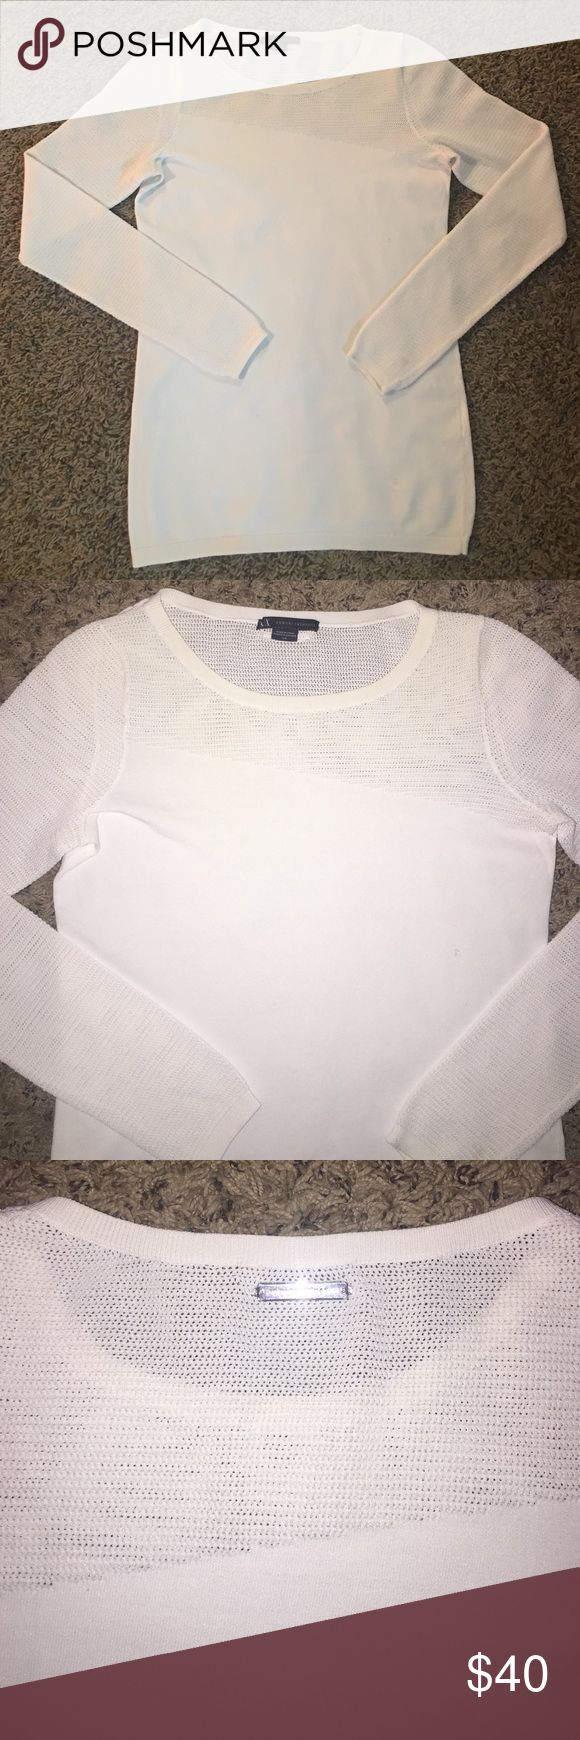 ARMANI EXCHANGE GIGOT SHOULDER AND SLEEVE KNIT TOP What a deal!! 10 MIN SALE! 🔥PICTURES HONESTLY DO NOT DO THIS TOP JUSTICE.  IN EXCELLENT CONDITION WORN JUST A COUPLE OF TIMES.  SUCH A GORGEOUS WHITE PIECE.  VERY CLASSY/SEXY WITH A PAIR OF BLACK LEGGINGS AND KNEE HIGH BOOTS.  IT LOOKS AND FEELS HIGH END WHEN U PUT IT ON.  SIZE SMALL BUT UT STRETCHES SO MEDIUM WILL FIT JUST PERFECT AS WELL.  WHOS GONNA BE THE NEXT BEAUTY TO ROCK THE HECK OUT OF ARMANI ☺️? (FINAL PRICE) XOXO ❤️💋 A/X Armani…